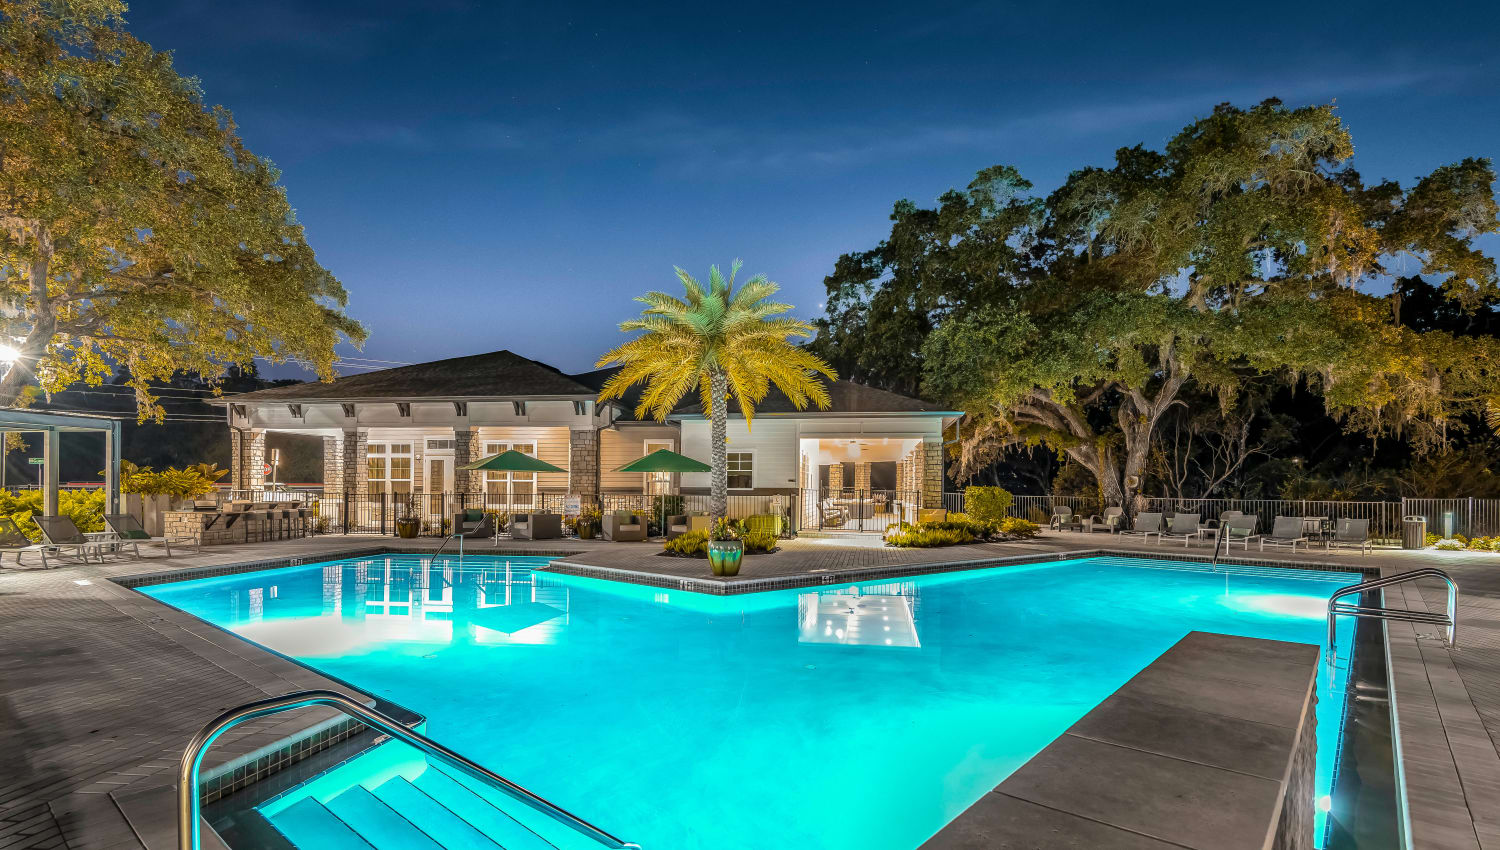 Even view of the pool with underwater lights on at Canopy at Citrus Park in Tampa, Florida